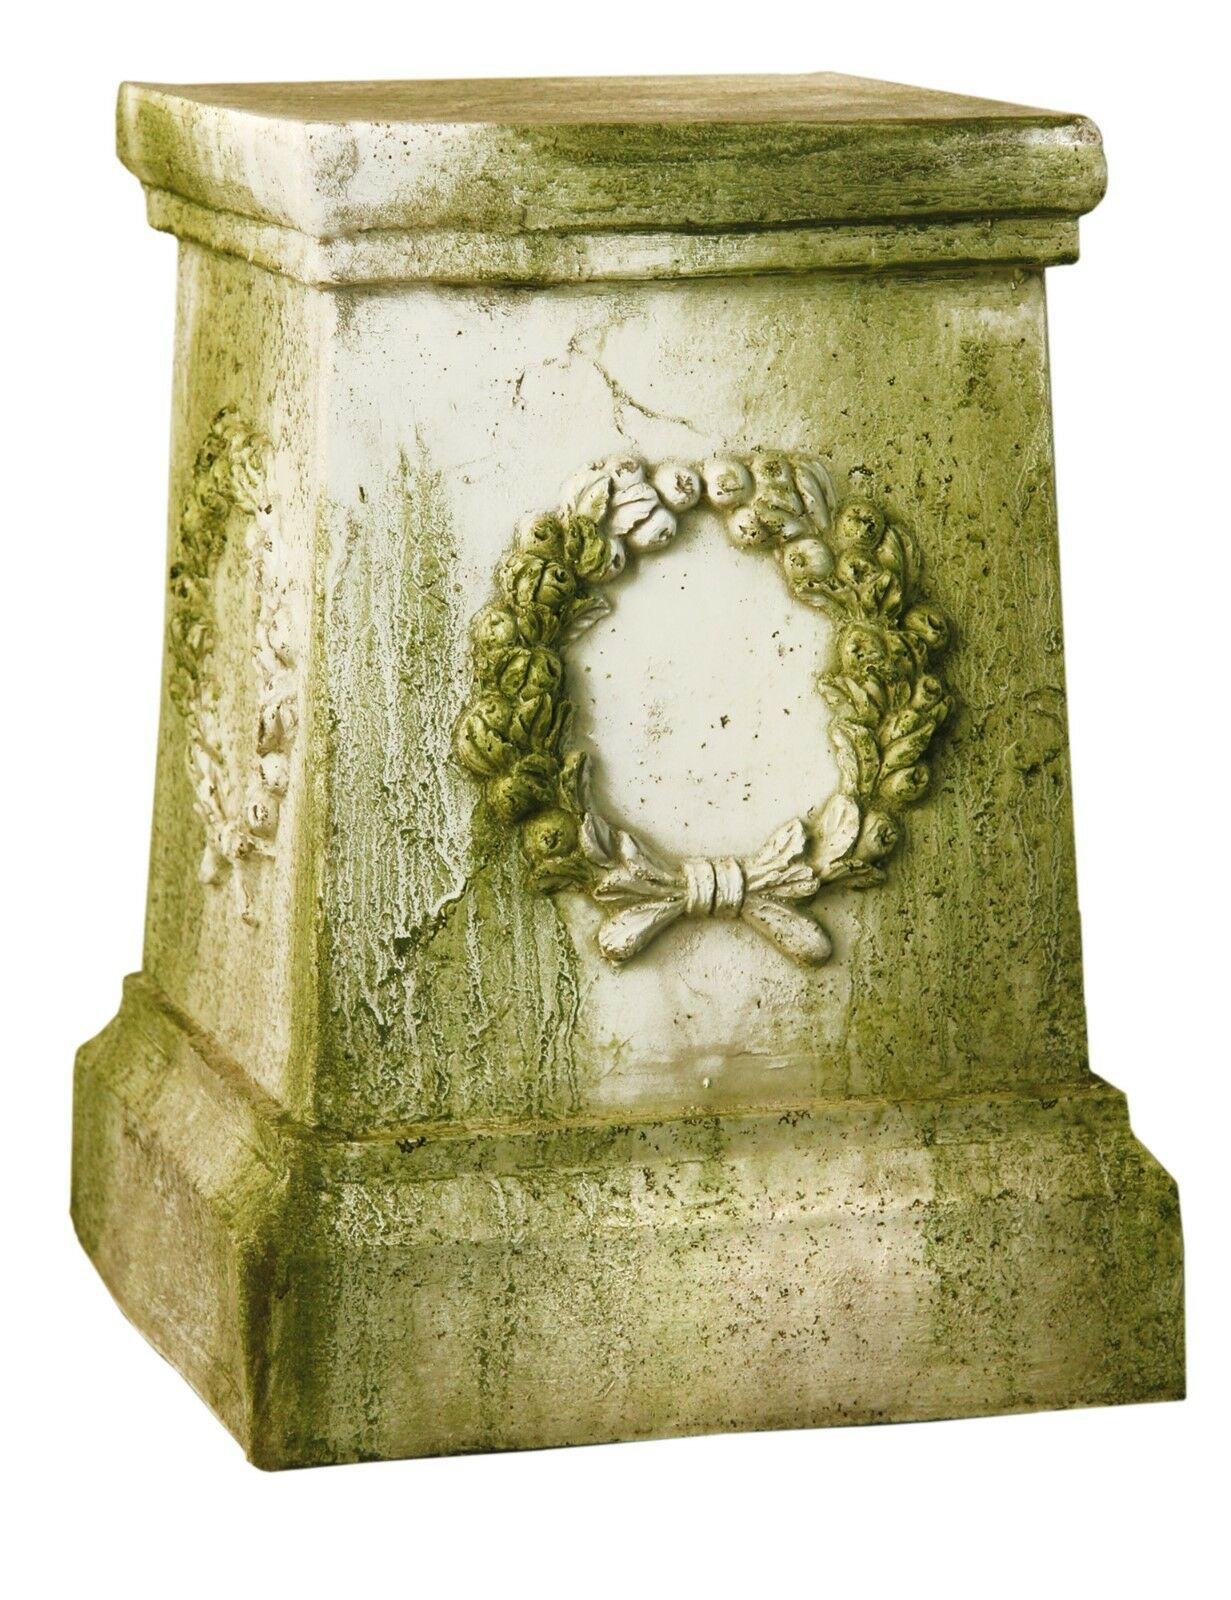 Wreath Outdoor Garden Pedestal For Urn, Statue- Fiberstone by Orlandi FS35012